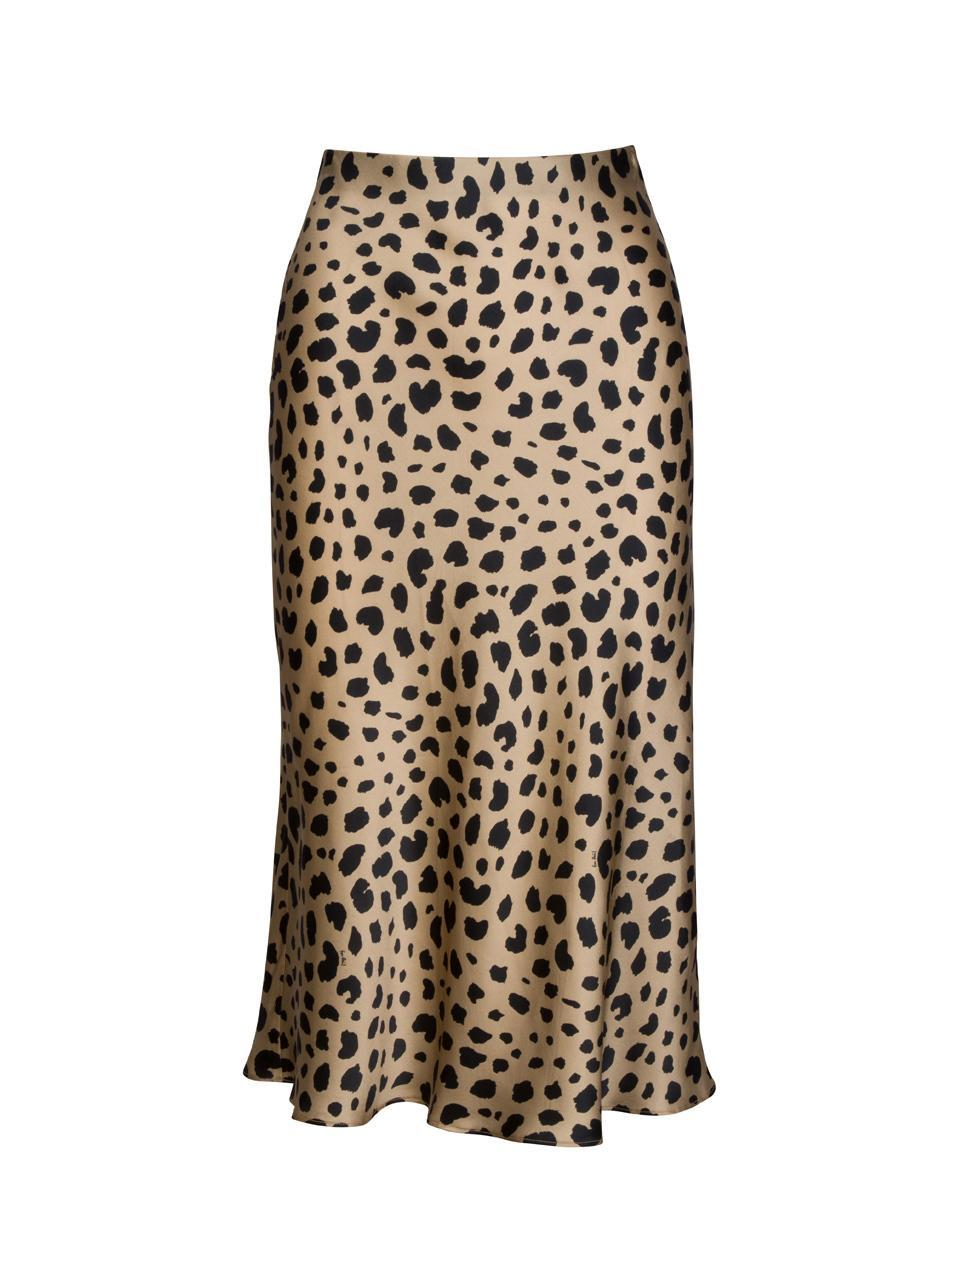 "<p><span>What's not to love about this leopard print, silk midi skirt? Perfect worn with a slounchy jumper or equally, with heeled sandals for a night out. What's more, it's got the influencer seal of approval and has been clogging up our Instagram </span><span>f</span><span>eeds.</span><br><em><a href=""https://realisationpar.com/the-naomi-wild-things/"" rel=""nofollow noopener"" target=""_blank"" data-ylk=""slk:Buy here."" class=""link rapid-noclick-resp""><span>Buy here.</span></a></em><br><br></p>"